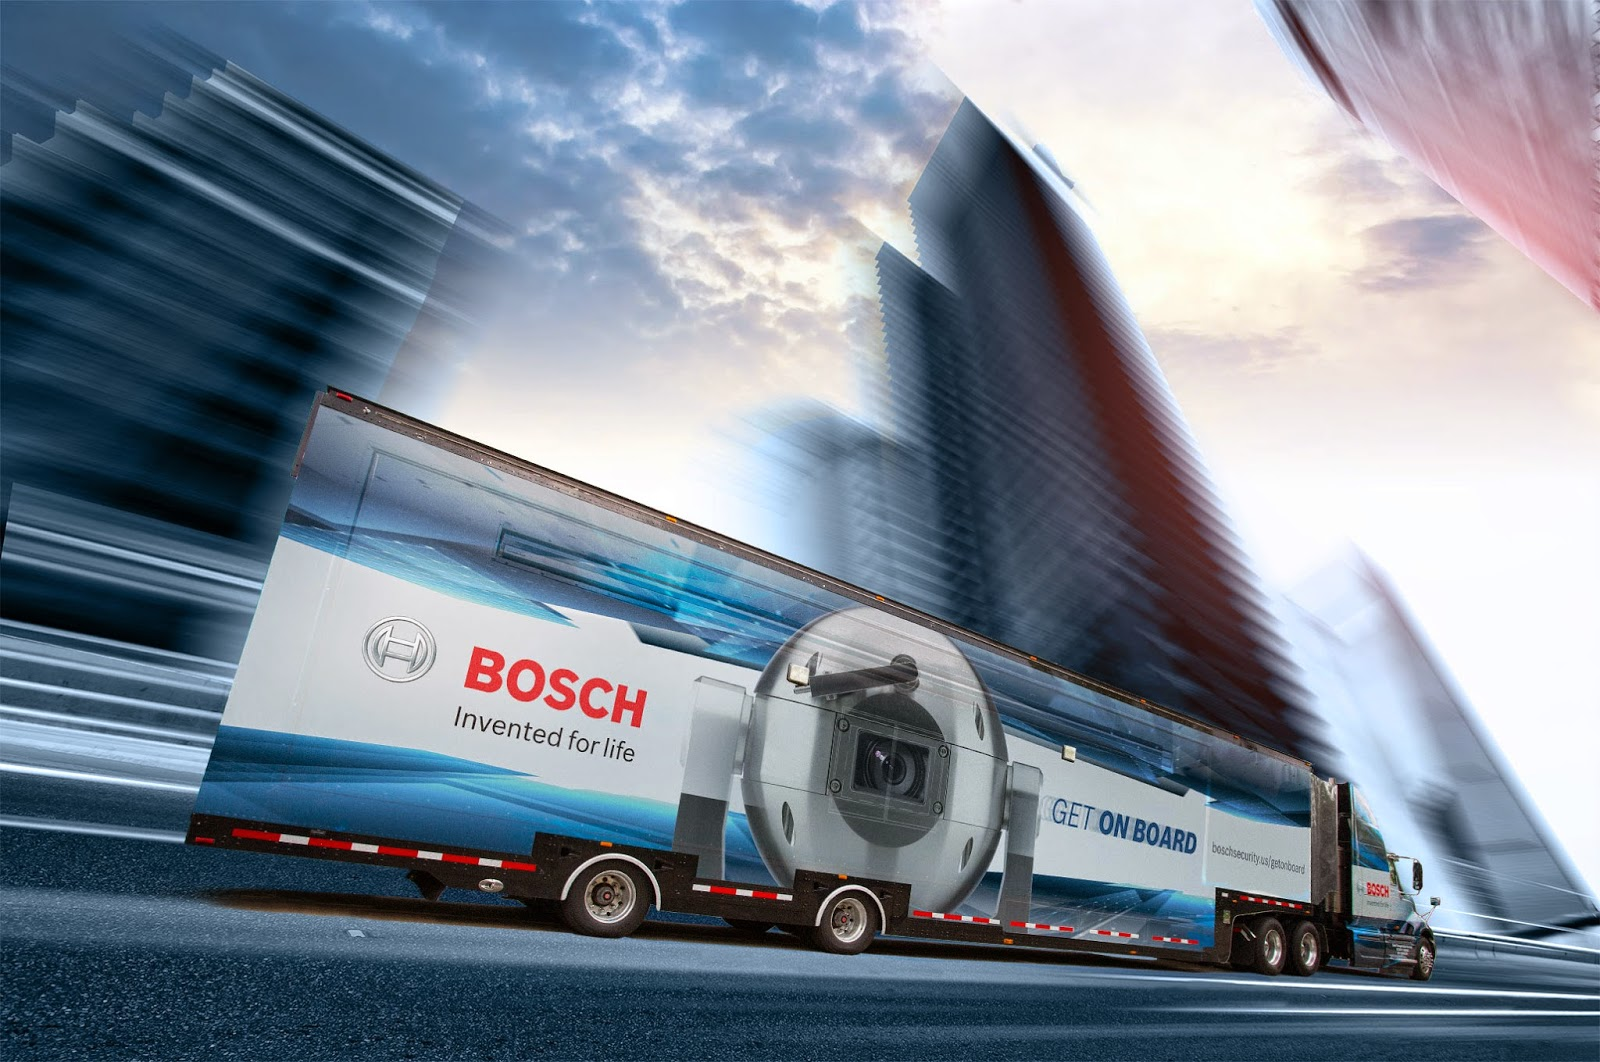 bosch commercial vehicle power  u0026 efficiency innovations